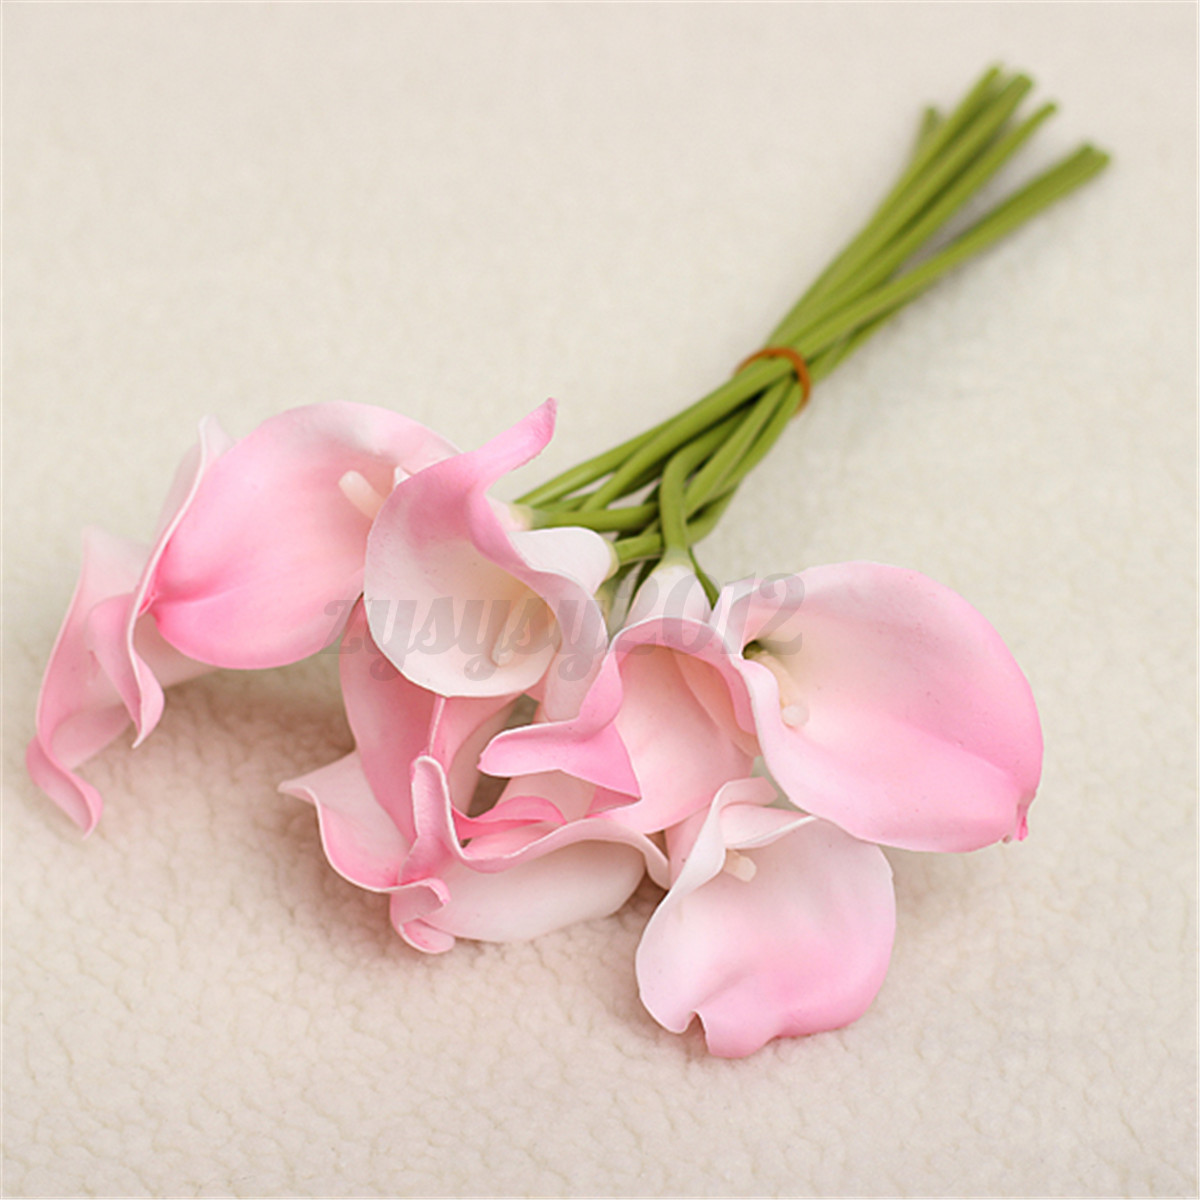 20x sweet artificial latex calla lily flowers bouquet garden our top pick dhlflorist Choice Image